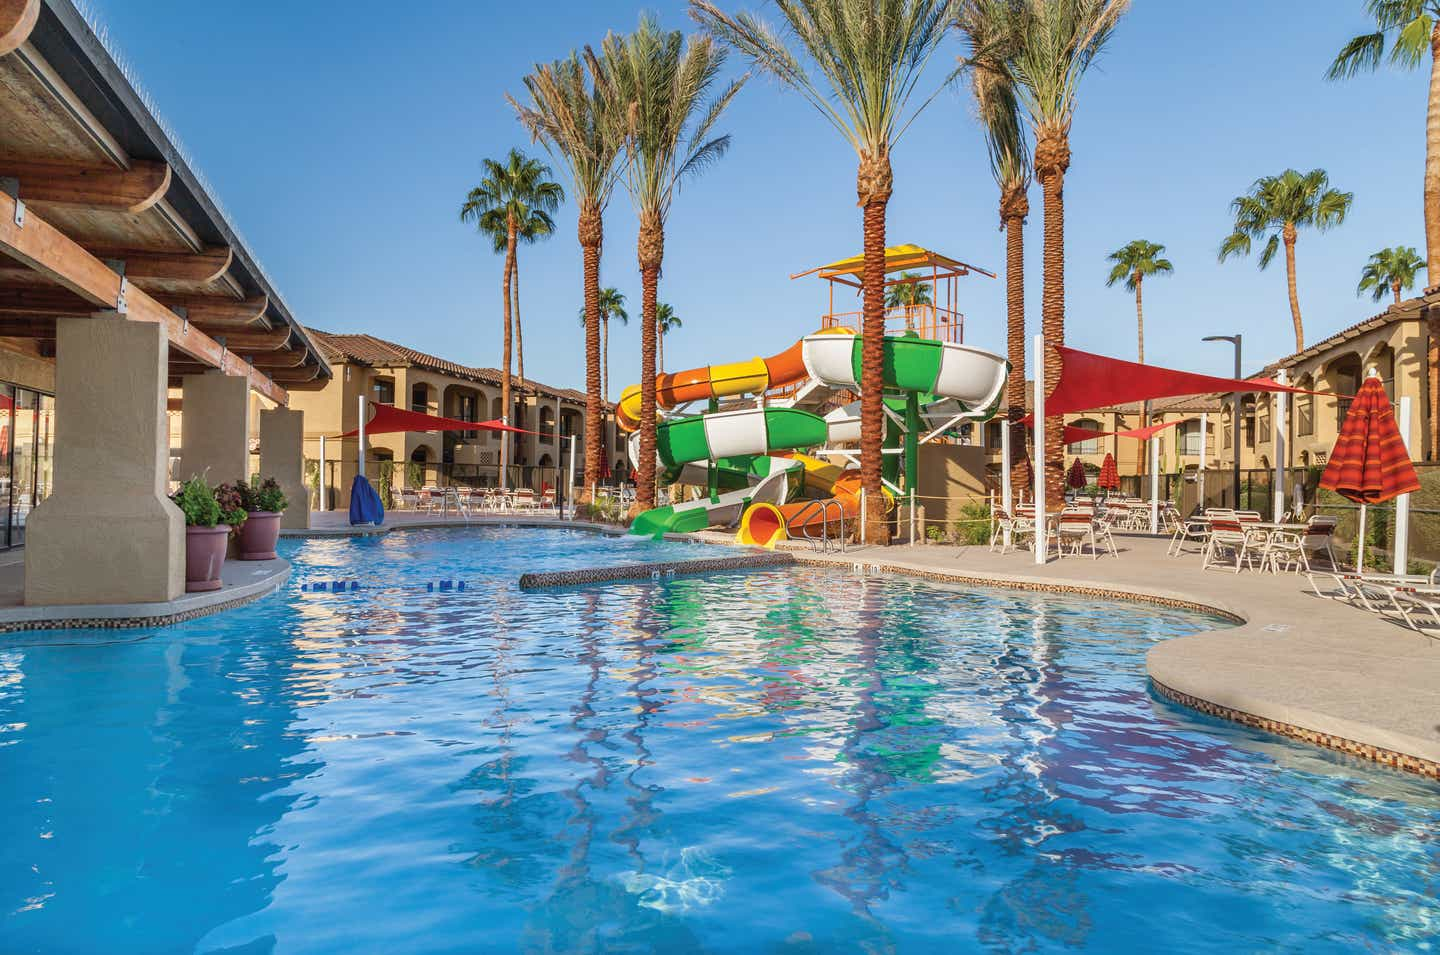 Swimming pool with tables and chairs and a large water slide at Scottsdale Resort in Arizona